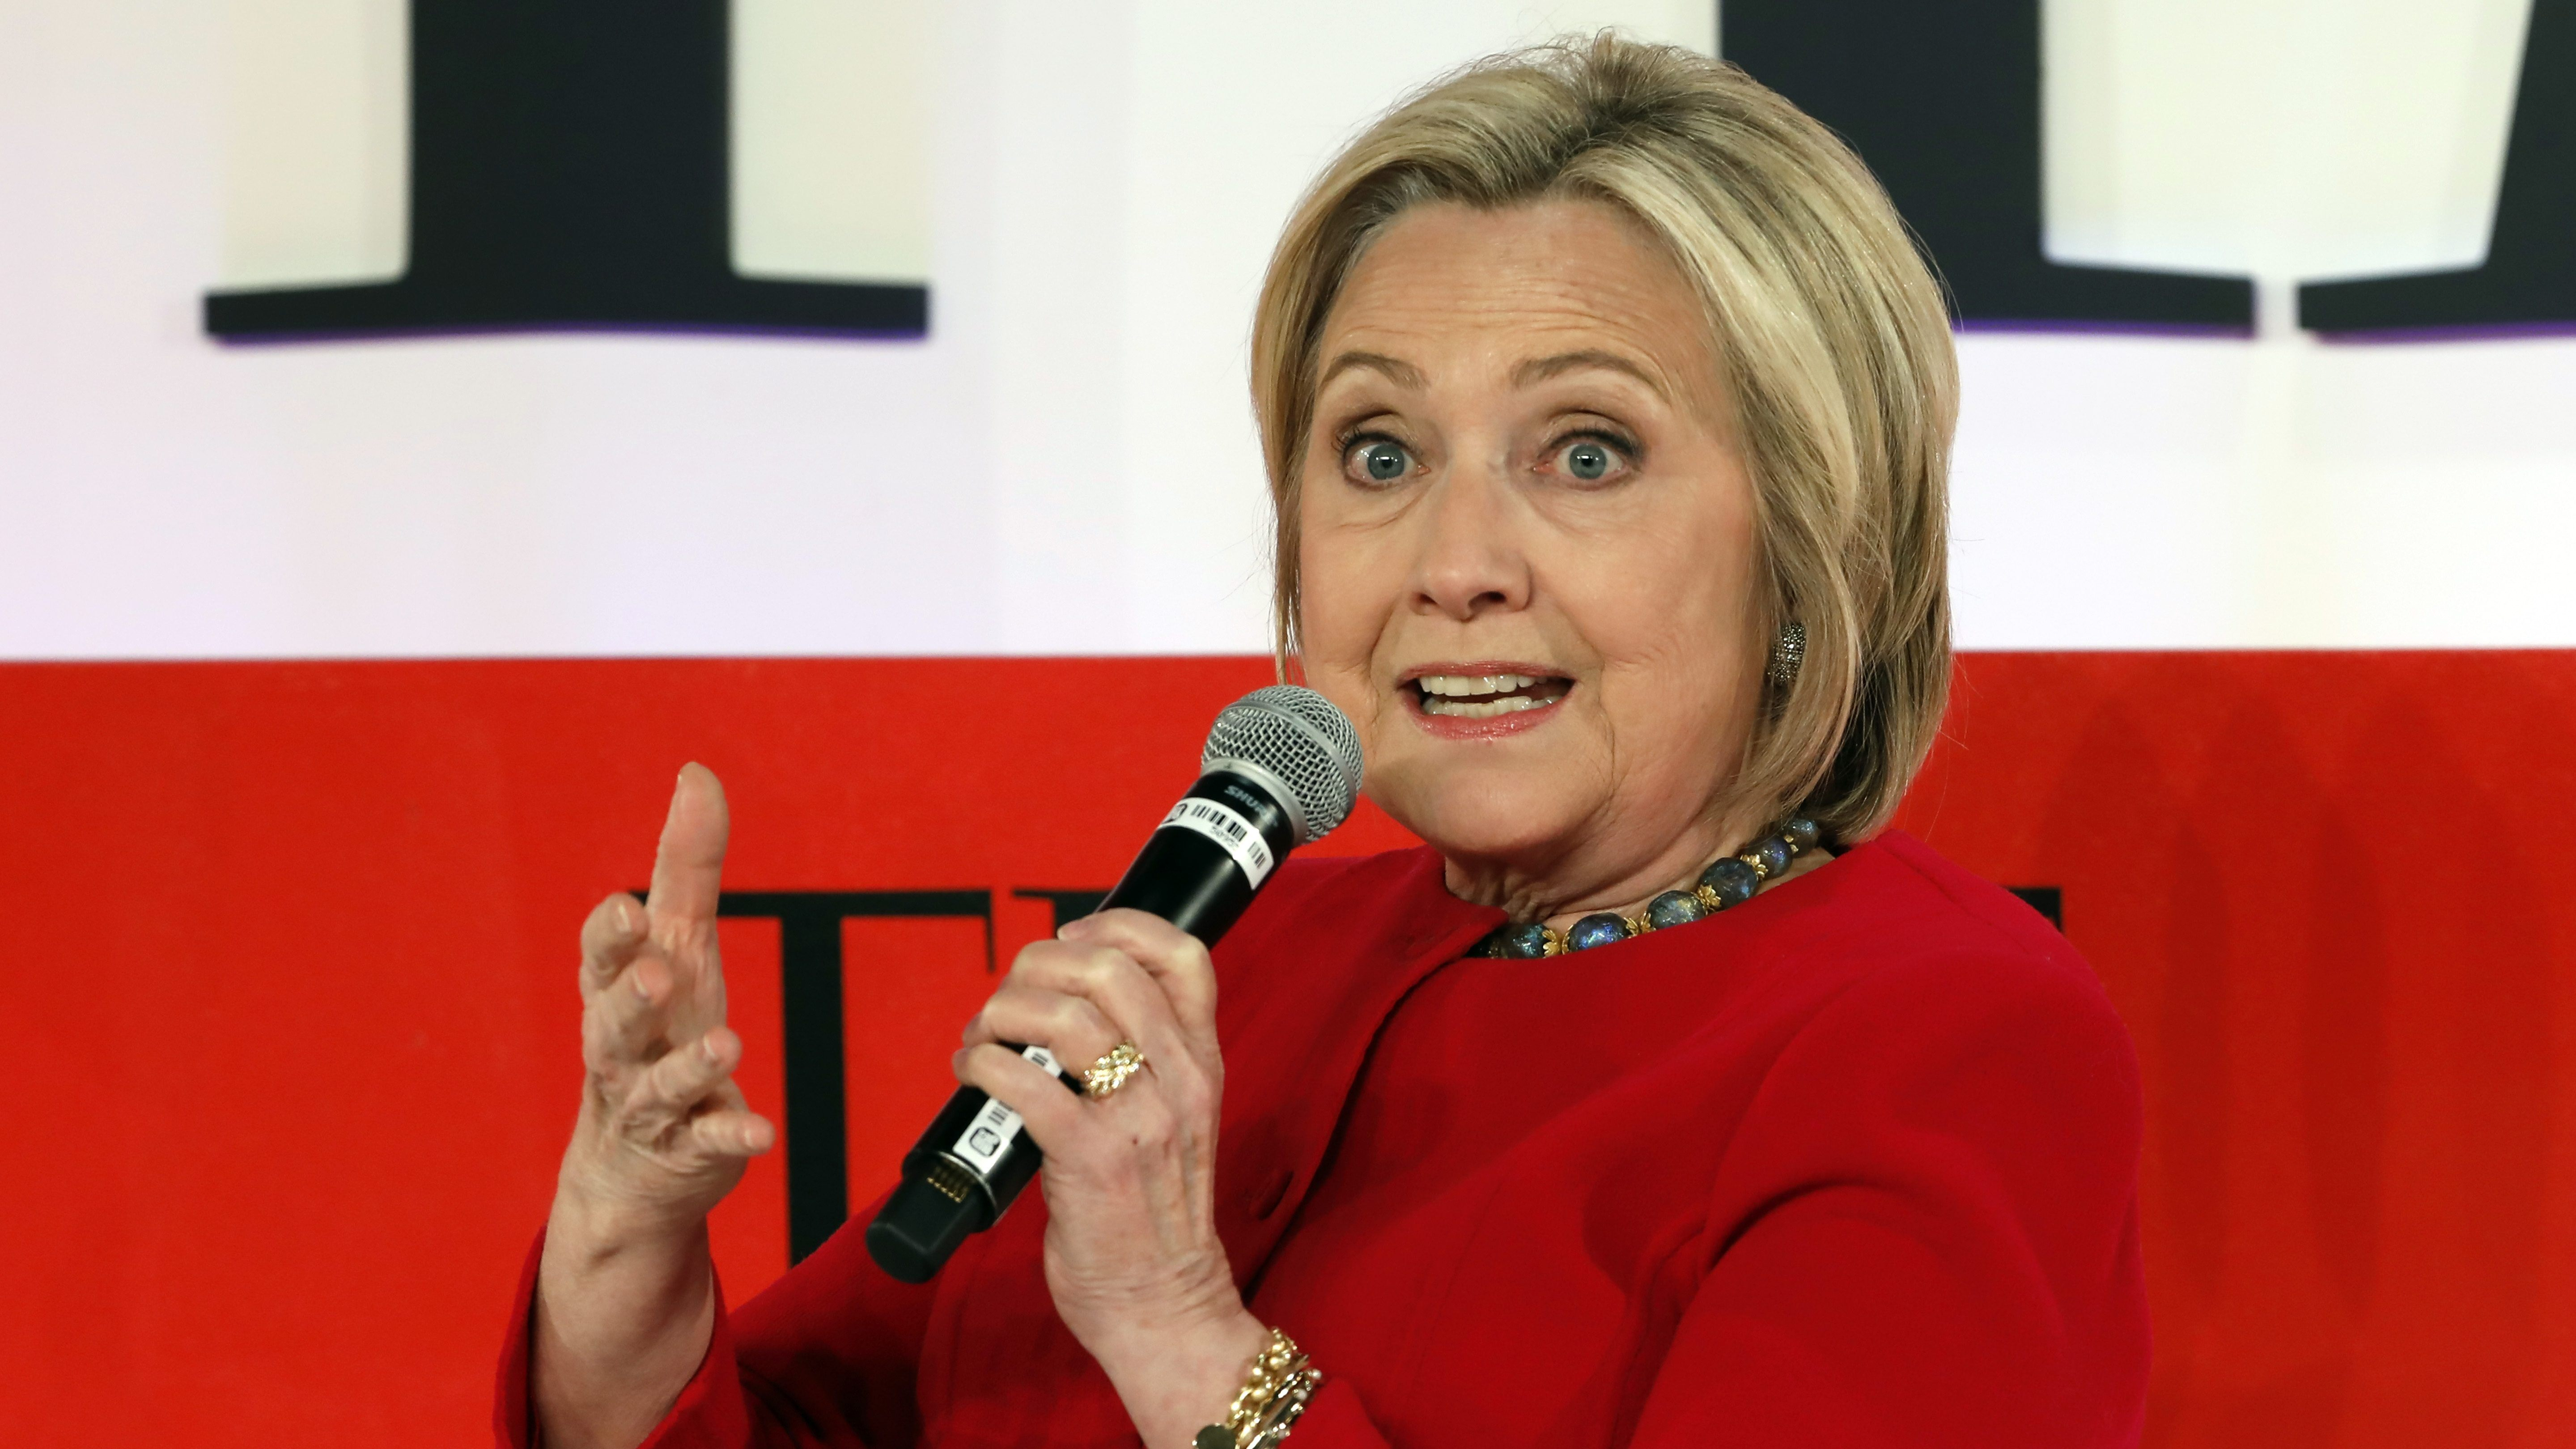 Hillary Clinton gets brutally mocked for reading printouts of her own emails at art exhibit